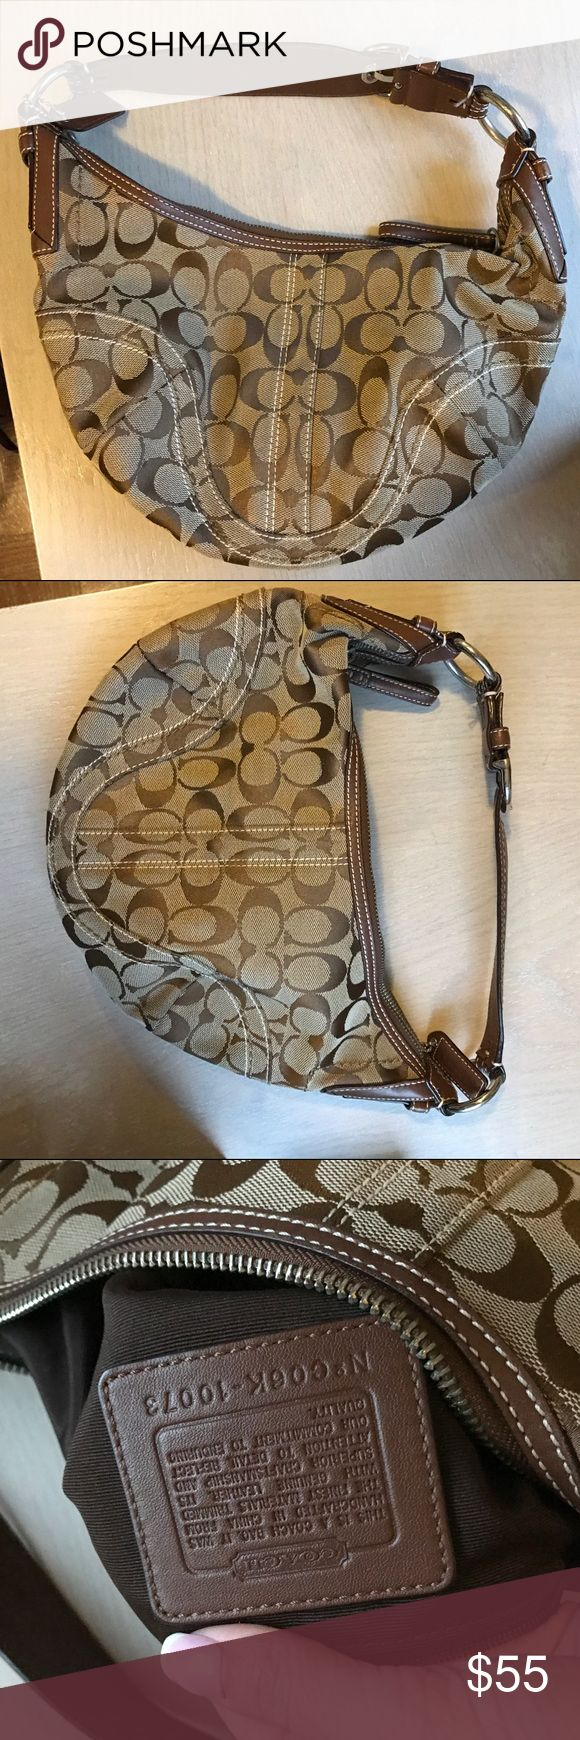 Small authentic monogram tan Coach hobo Perfect condition! Has small D keychain attached that can be removed but I will include it. 🌼Thank you for looking!  🌼I ship within 2 days shipping excluding holidays 🌼I do not trade! 🌼I only accept offers through the offer button! 🌼Thank you for shopping and feel free to ask any questions Coach Bags Hobos